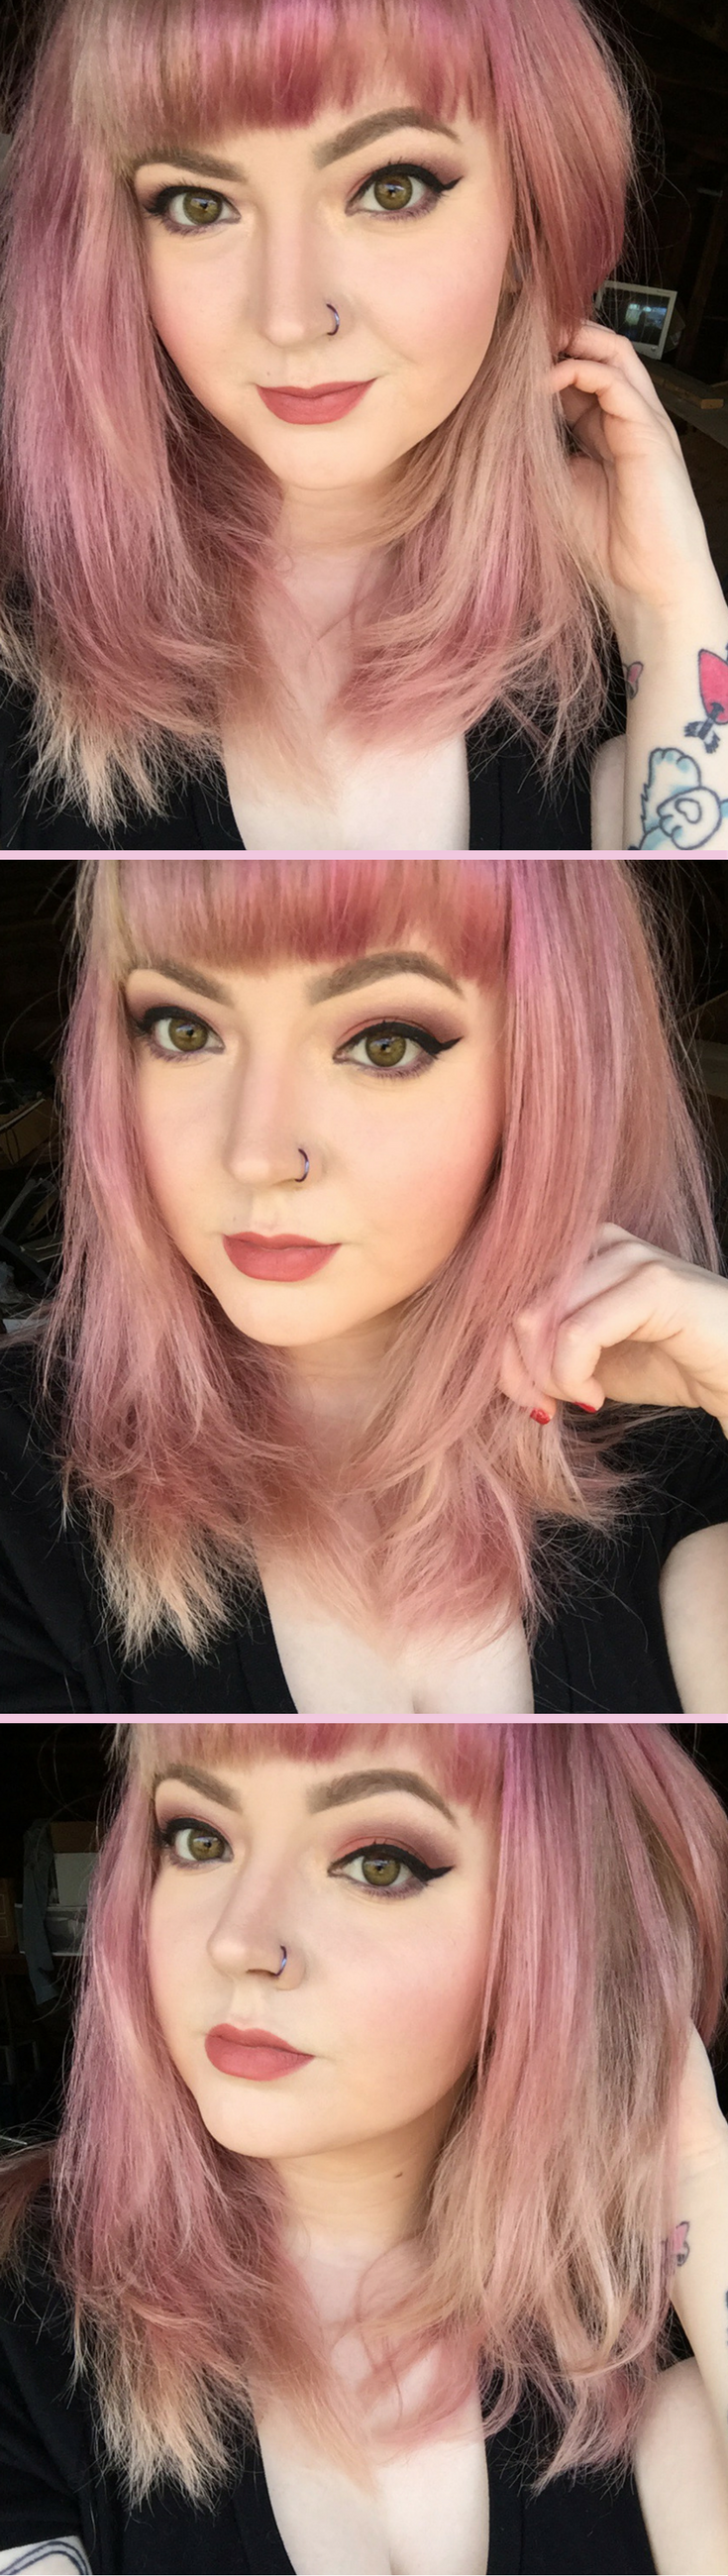 how to get pink hair dye to dye evenly